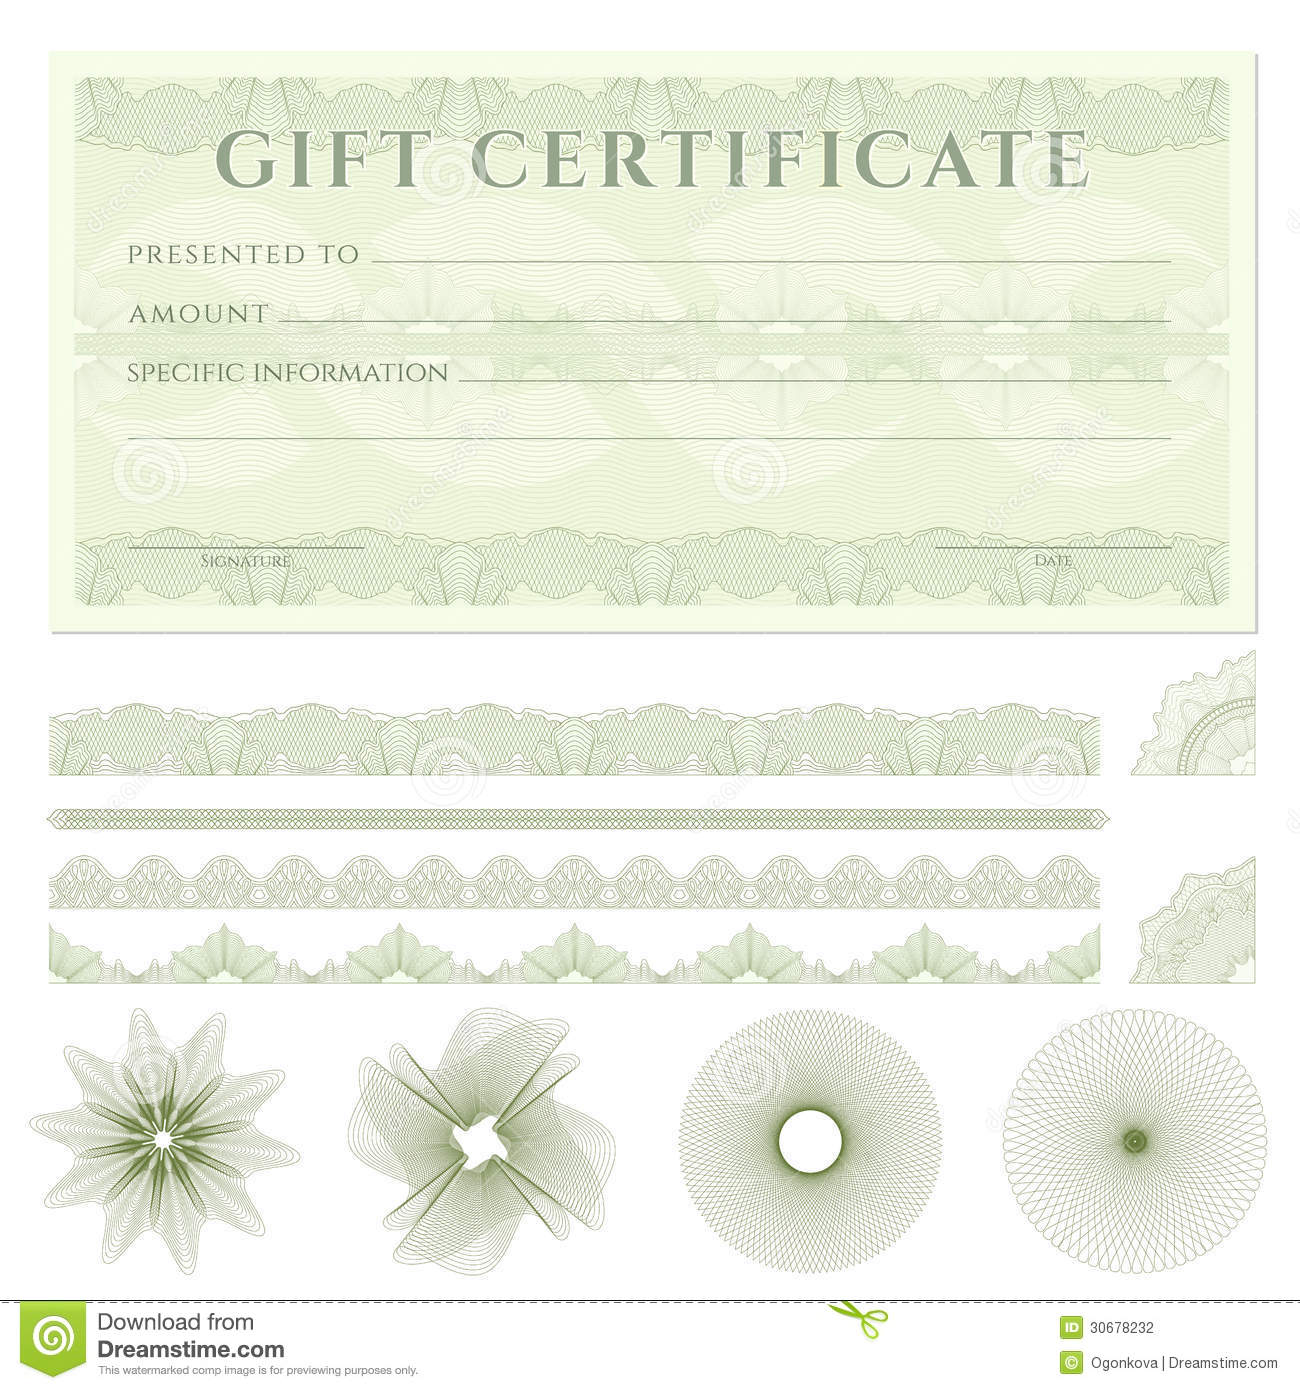 certificate template green resume builder certificate template green award certificates printable certificate templates gift certificate voucher template guilloche pattern